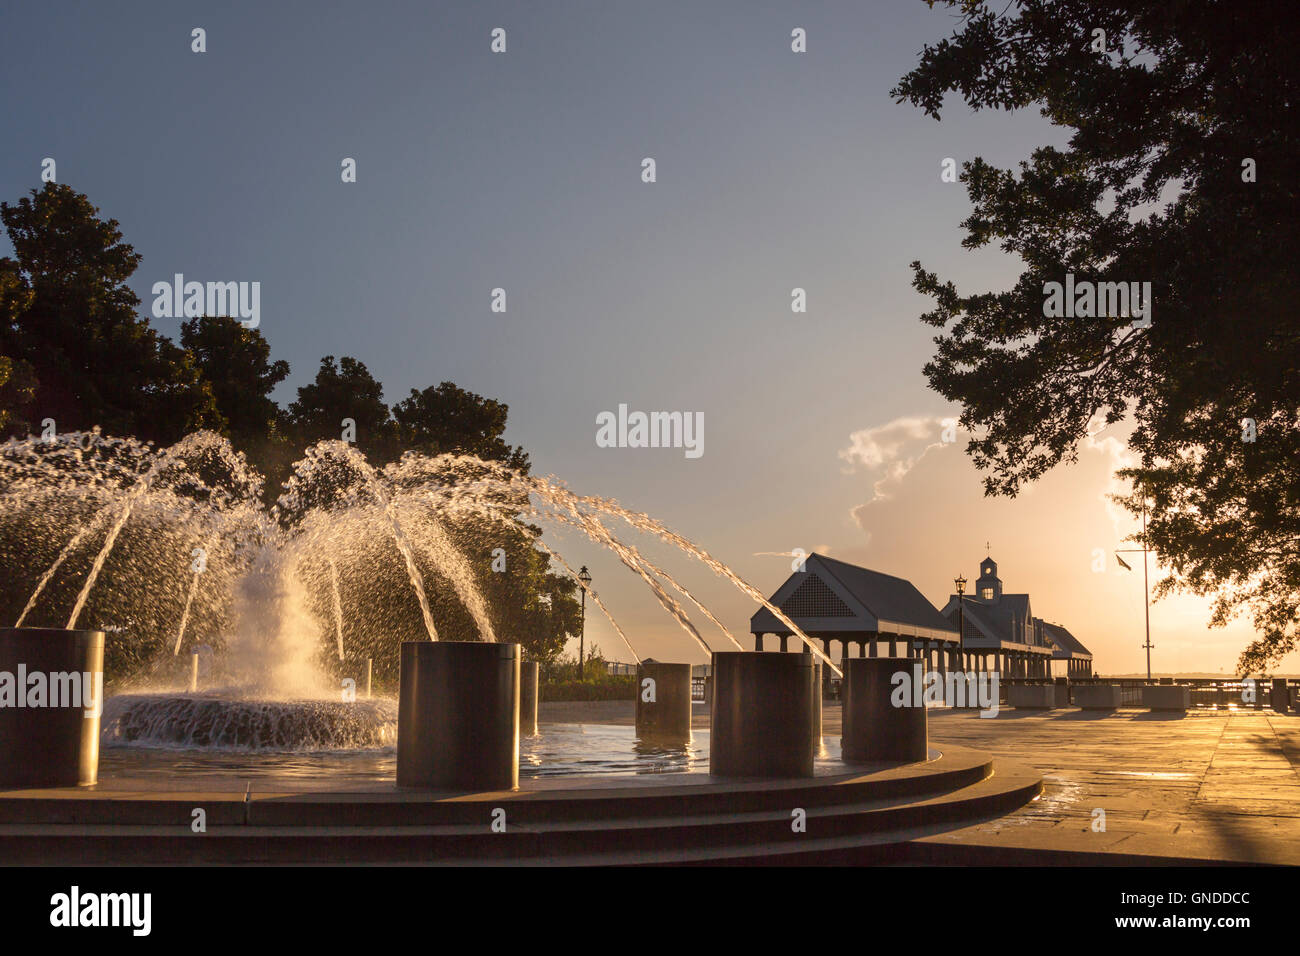 VENDUE FOUNTAIN WATERFRONT PARK DOWNTOWN CHARLESTON SOUTH CAROLINA USA - Stock Image